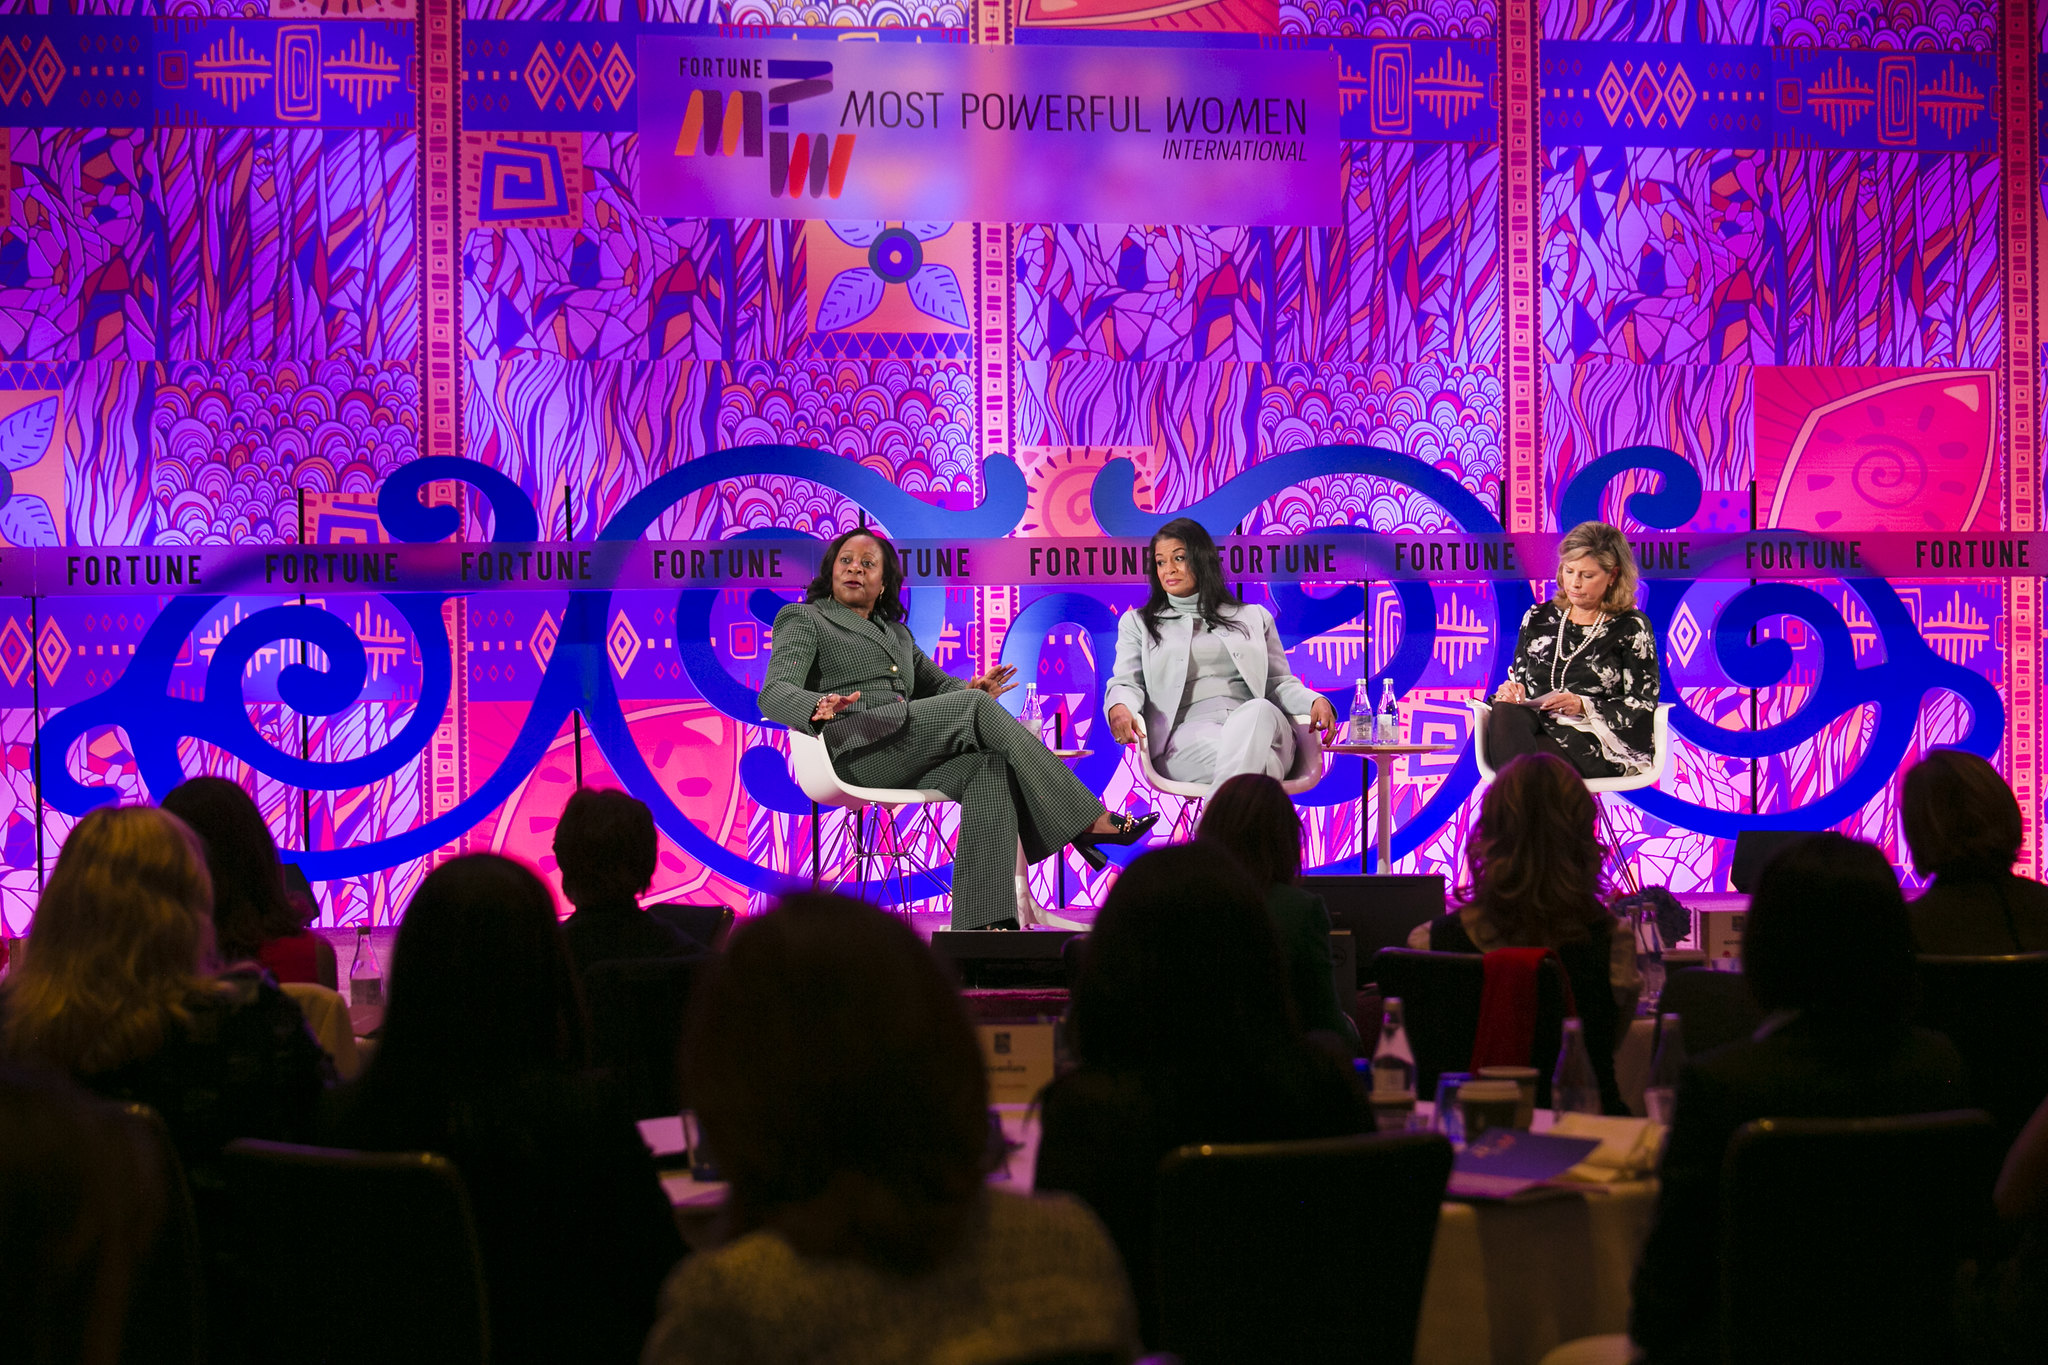 Women are finding more and more influence as CFOs. Two top Fortune 500 CFOs reveal how they're shaping company vision even as they drive financial results and boost company performance. Robin Washington, Executive Vice President and CFO, Gilead Sciences (Left) and Tracey T. Travis, Executive Vice President, Finance, and CFO, The Estée Lauder Companies (Middle), in conversation with: Nina Easton, FORTUNE.